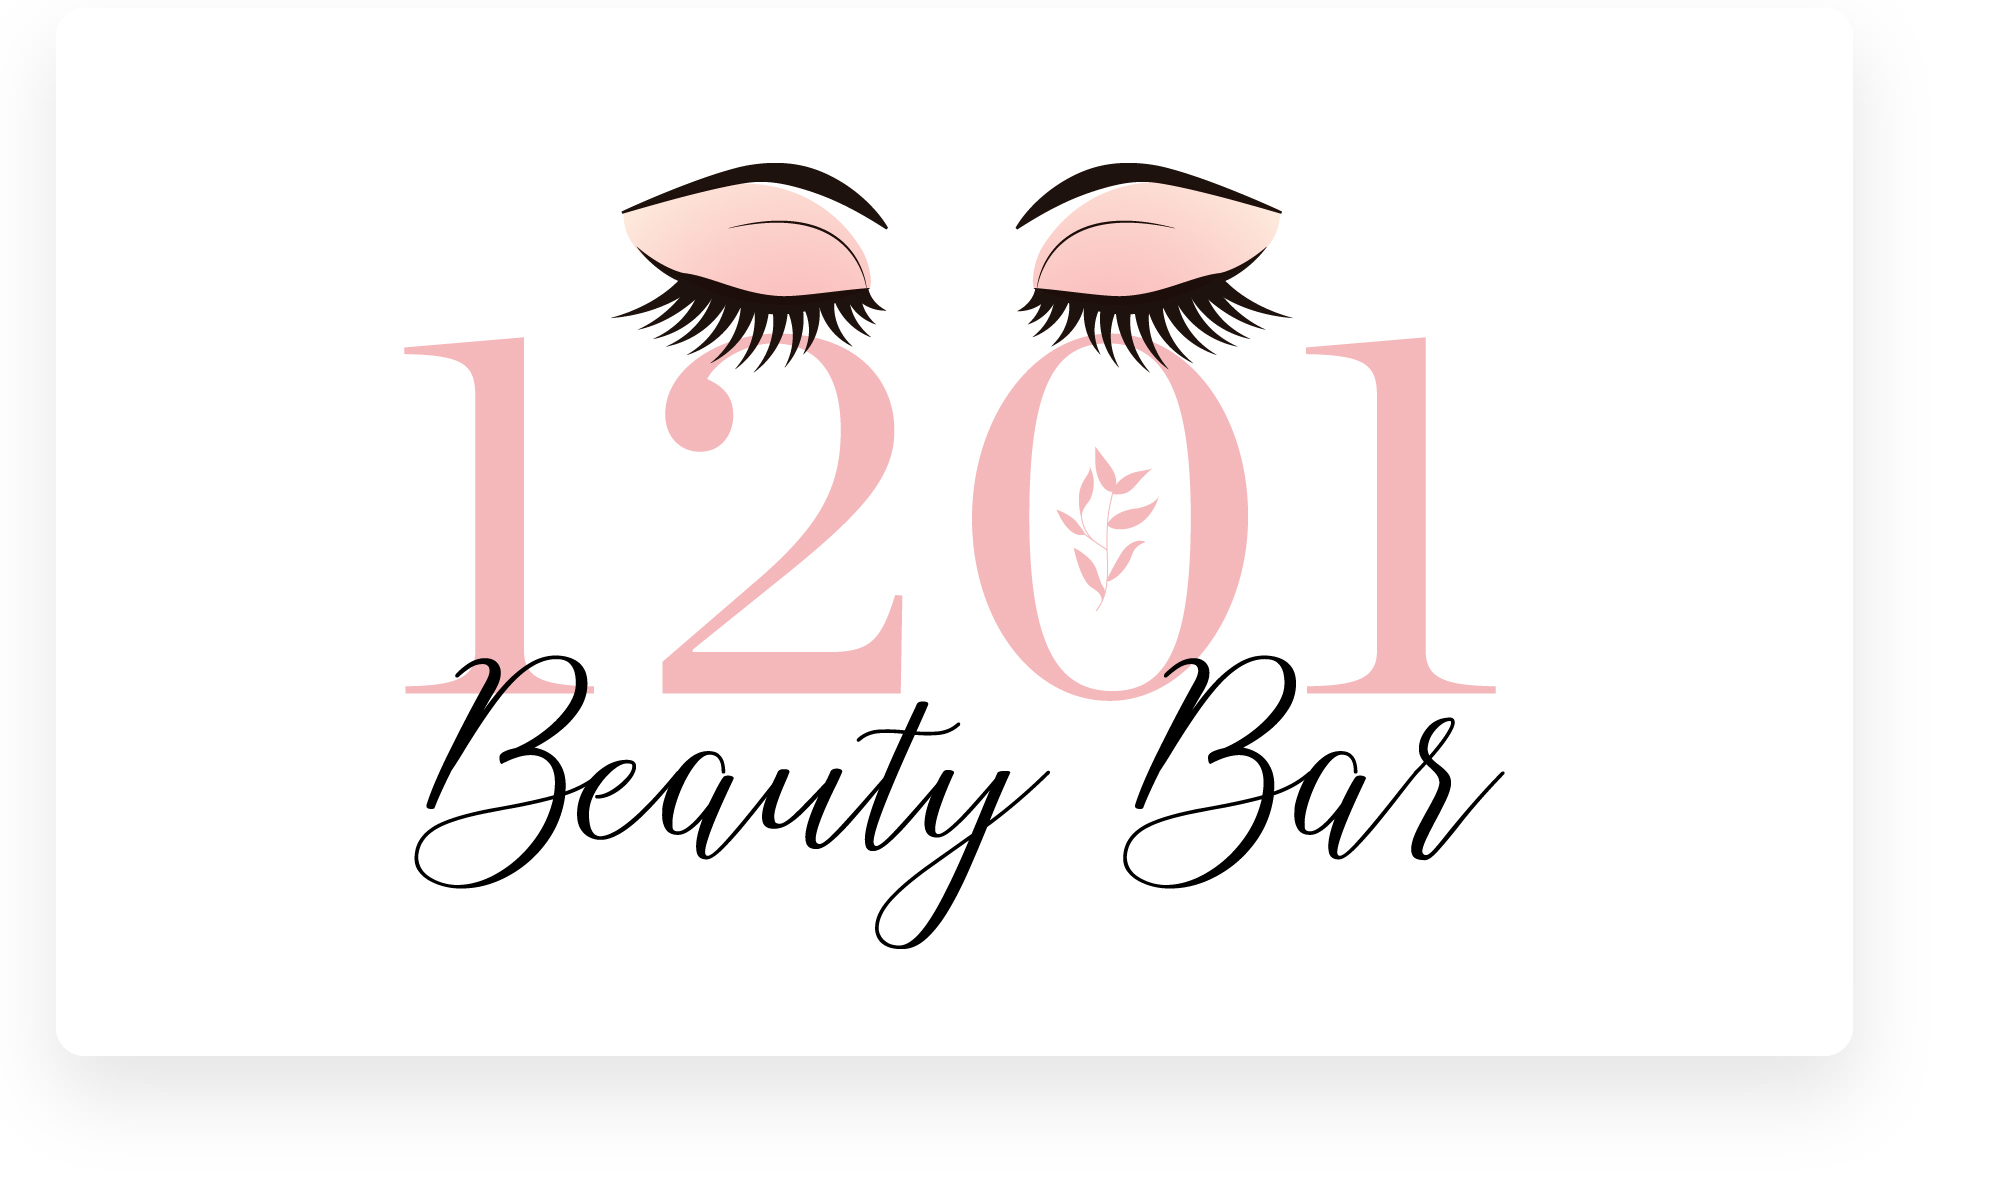 1201_Beauty_Bar.jpg